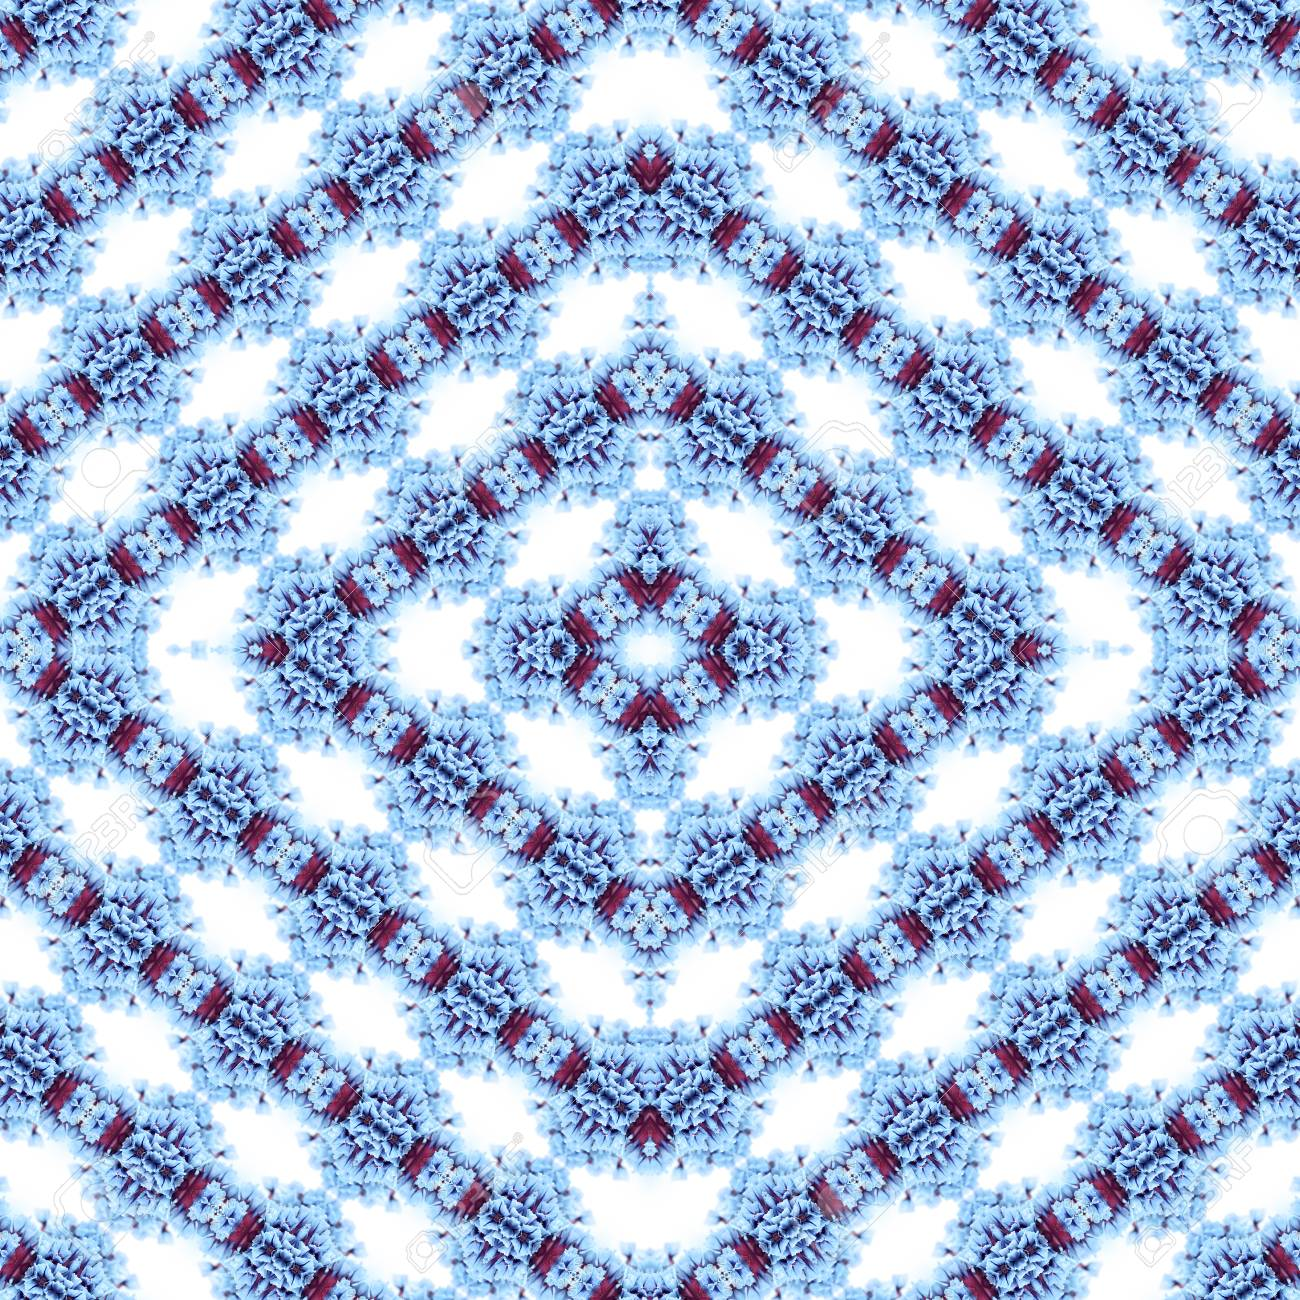 Abstract flowers seamless pattern background. Kaleidoscope from flowers. Hydraulic tile design. - 104074921